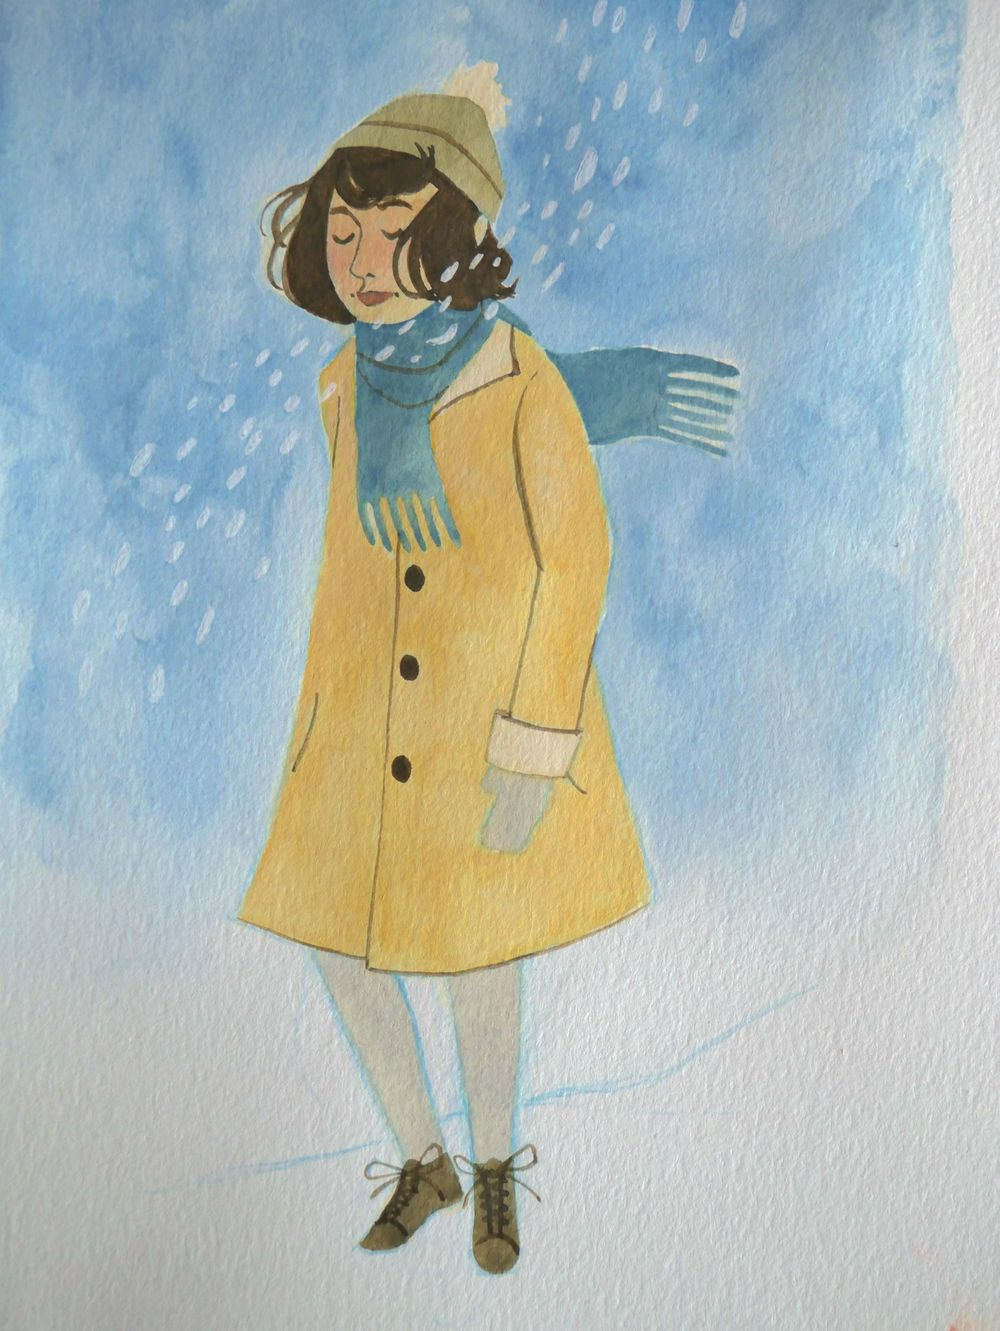 Winter Chill - image 4 - student project